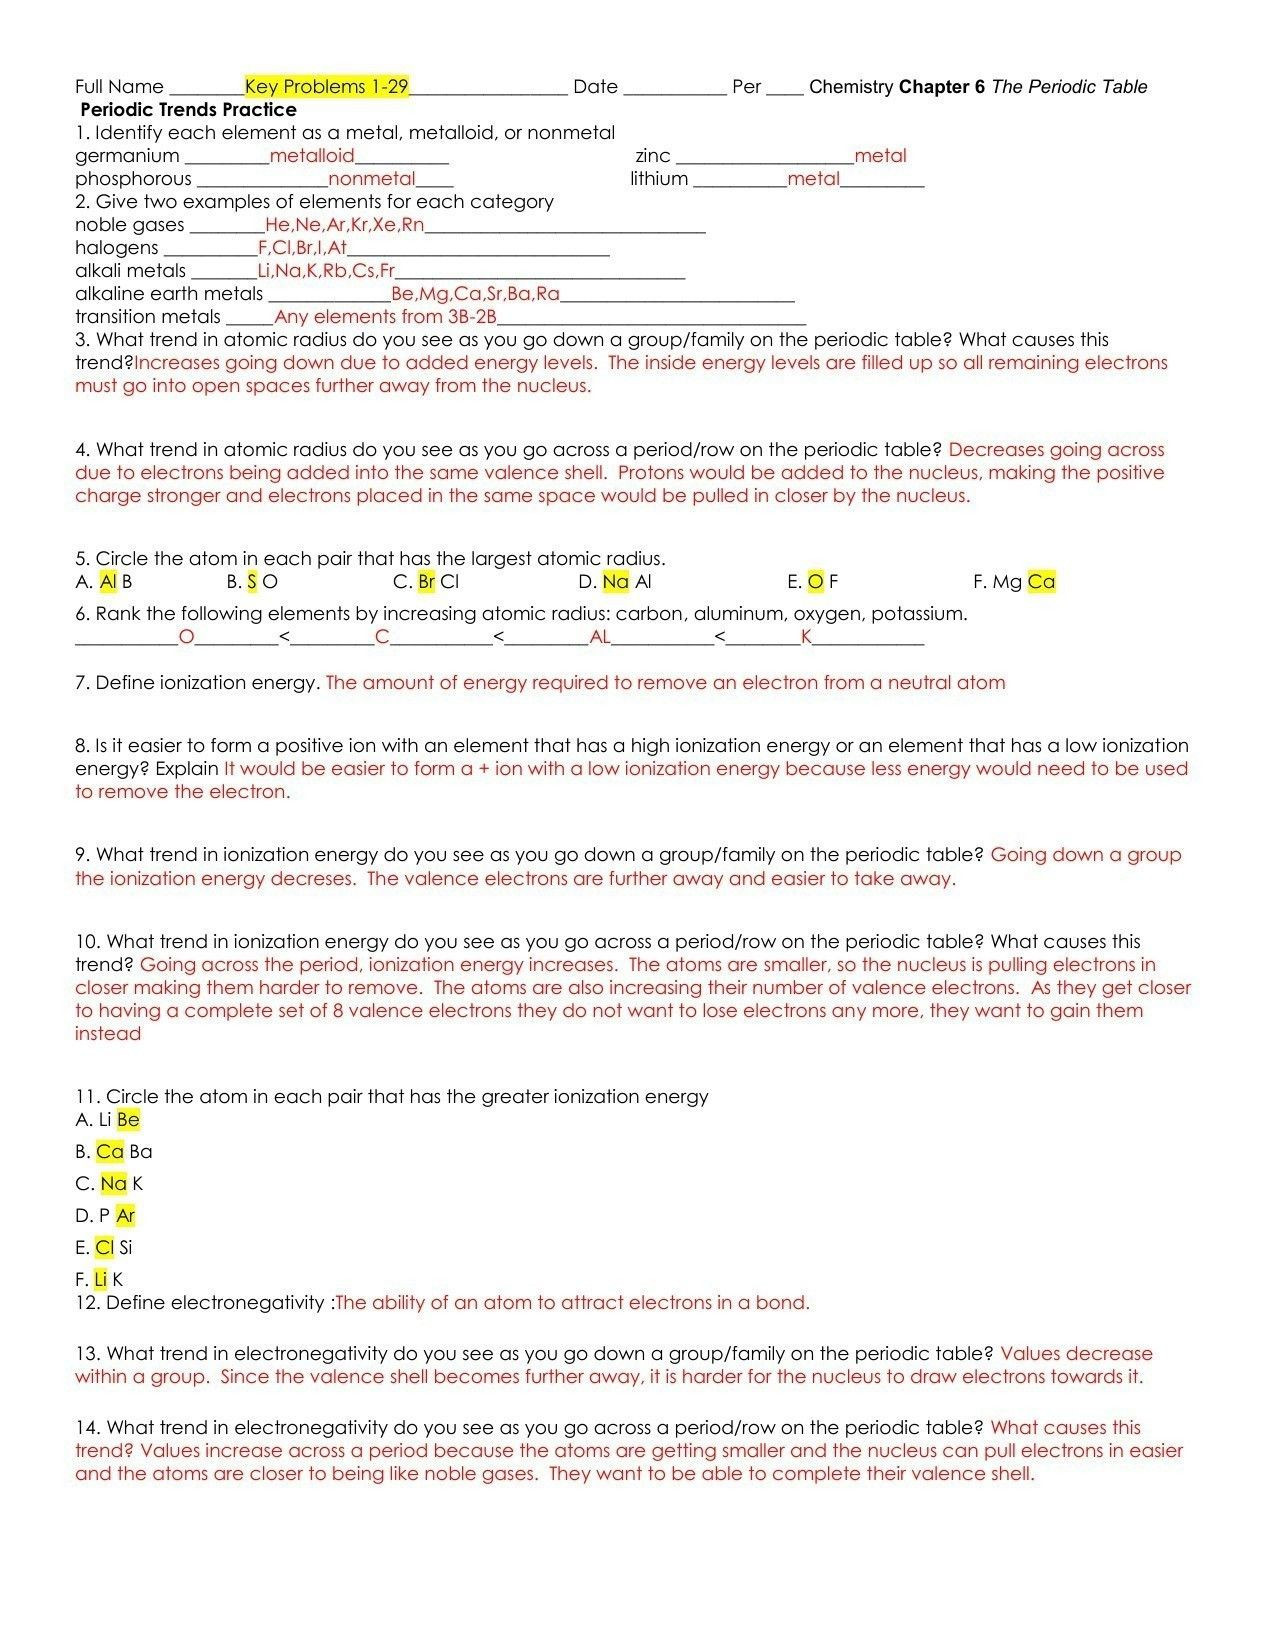 Valence Electrons Worksheet Answers formal Valence Electrons Worksheet Answers